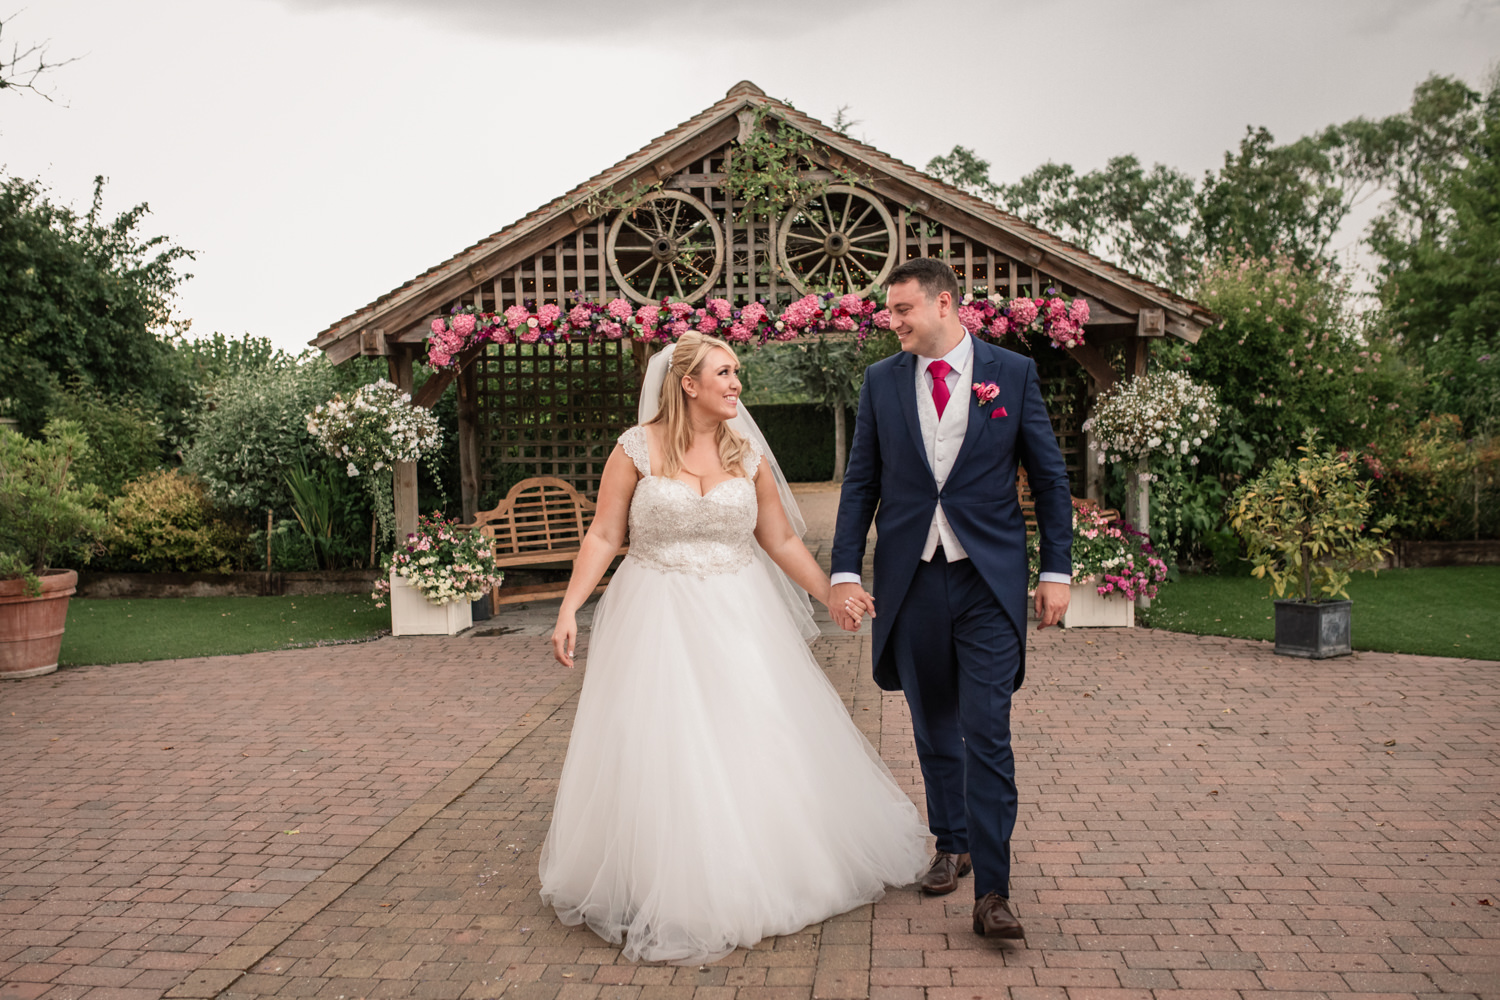 Flower filled summer wedding with pink hydrangeas, photo credit Becky Harley Photography (47)